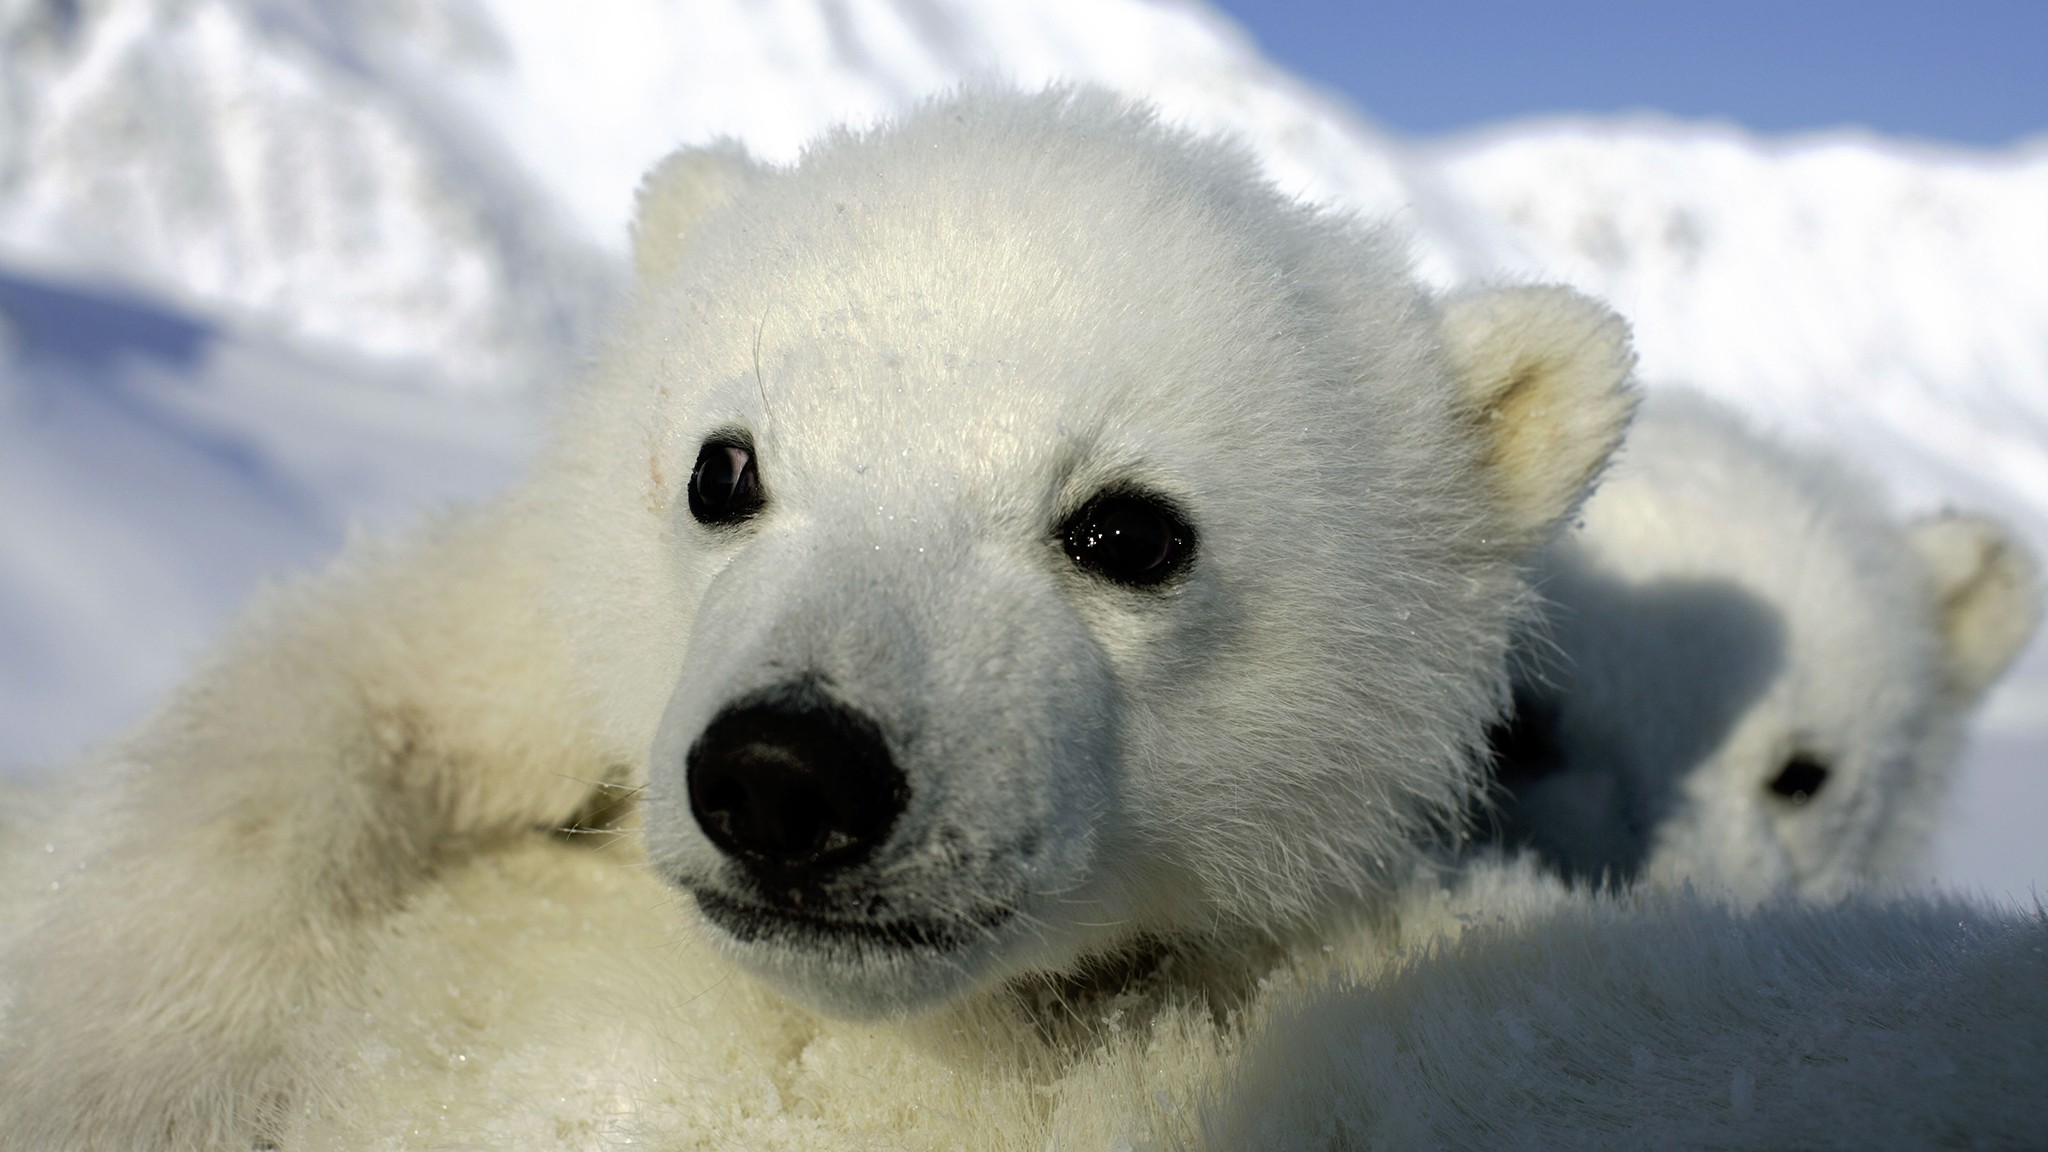 Jon Aars / Norwegian Polar Institute / WWF-Canon